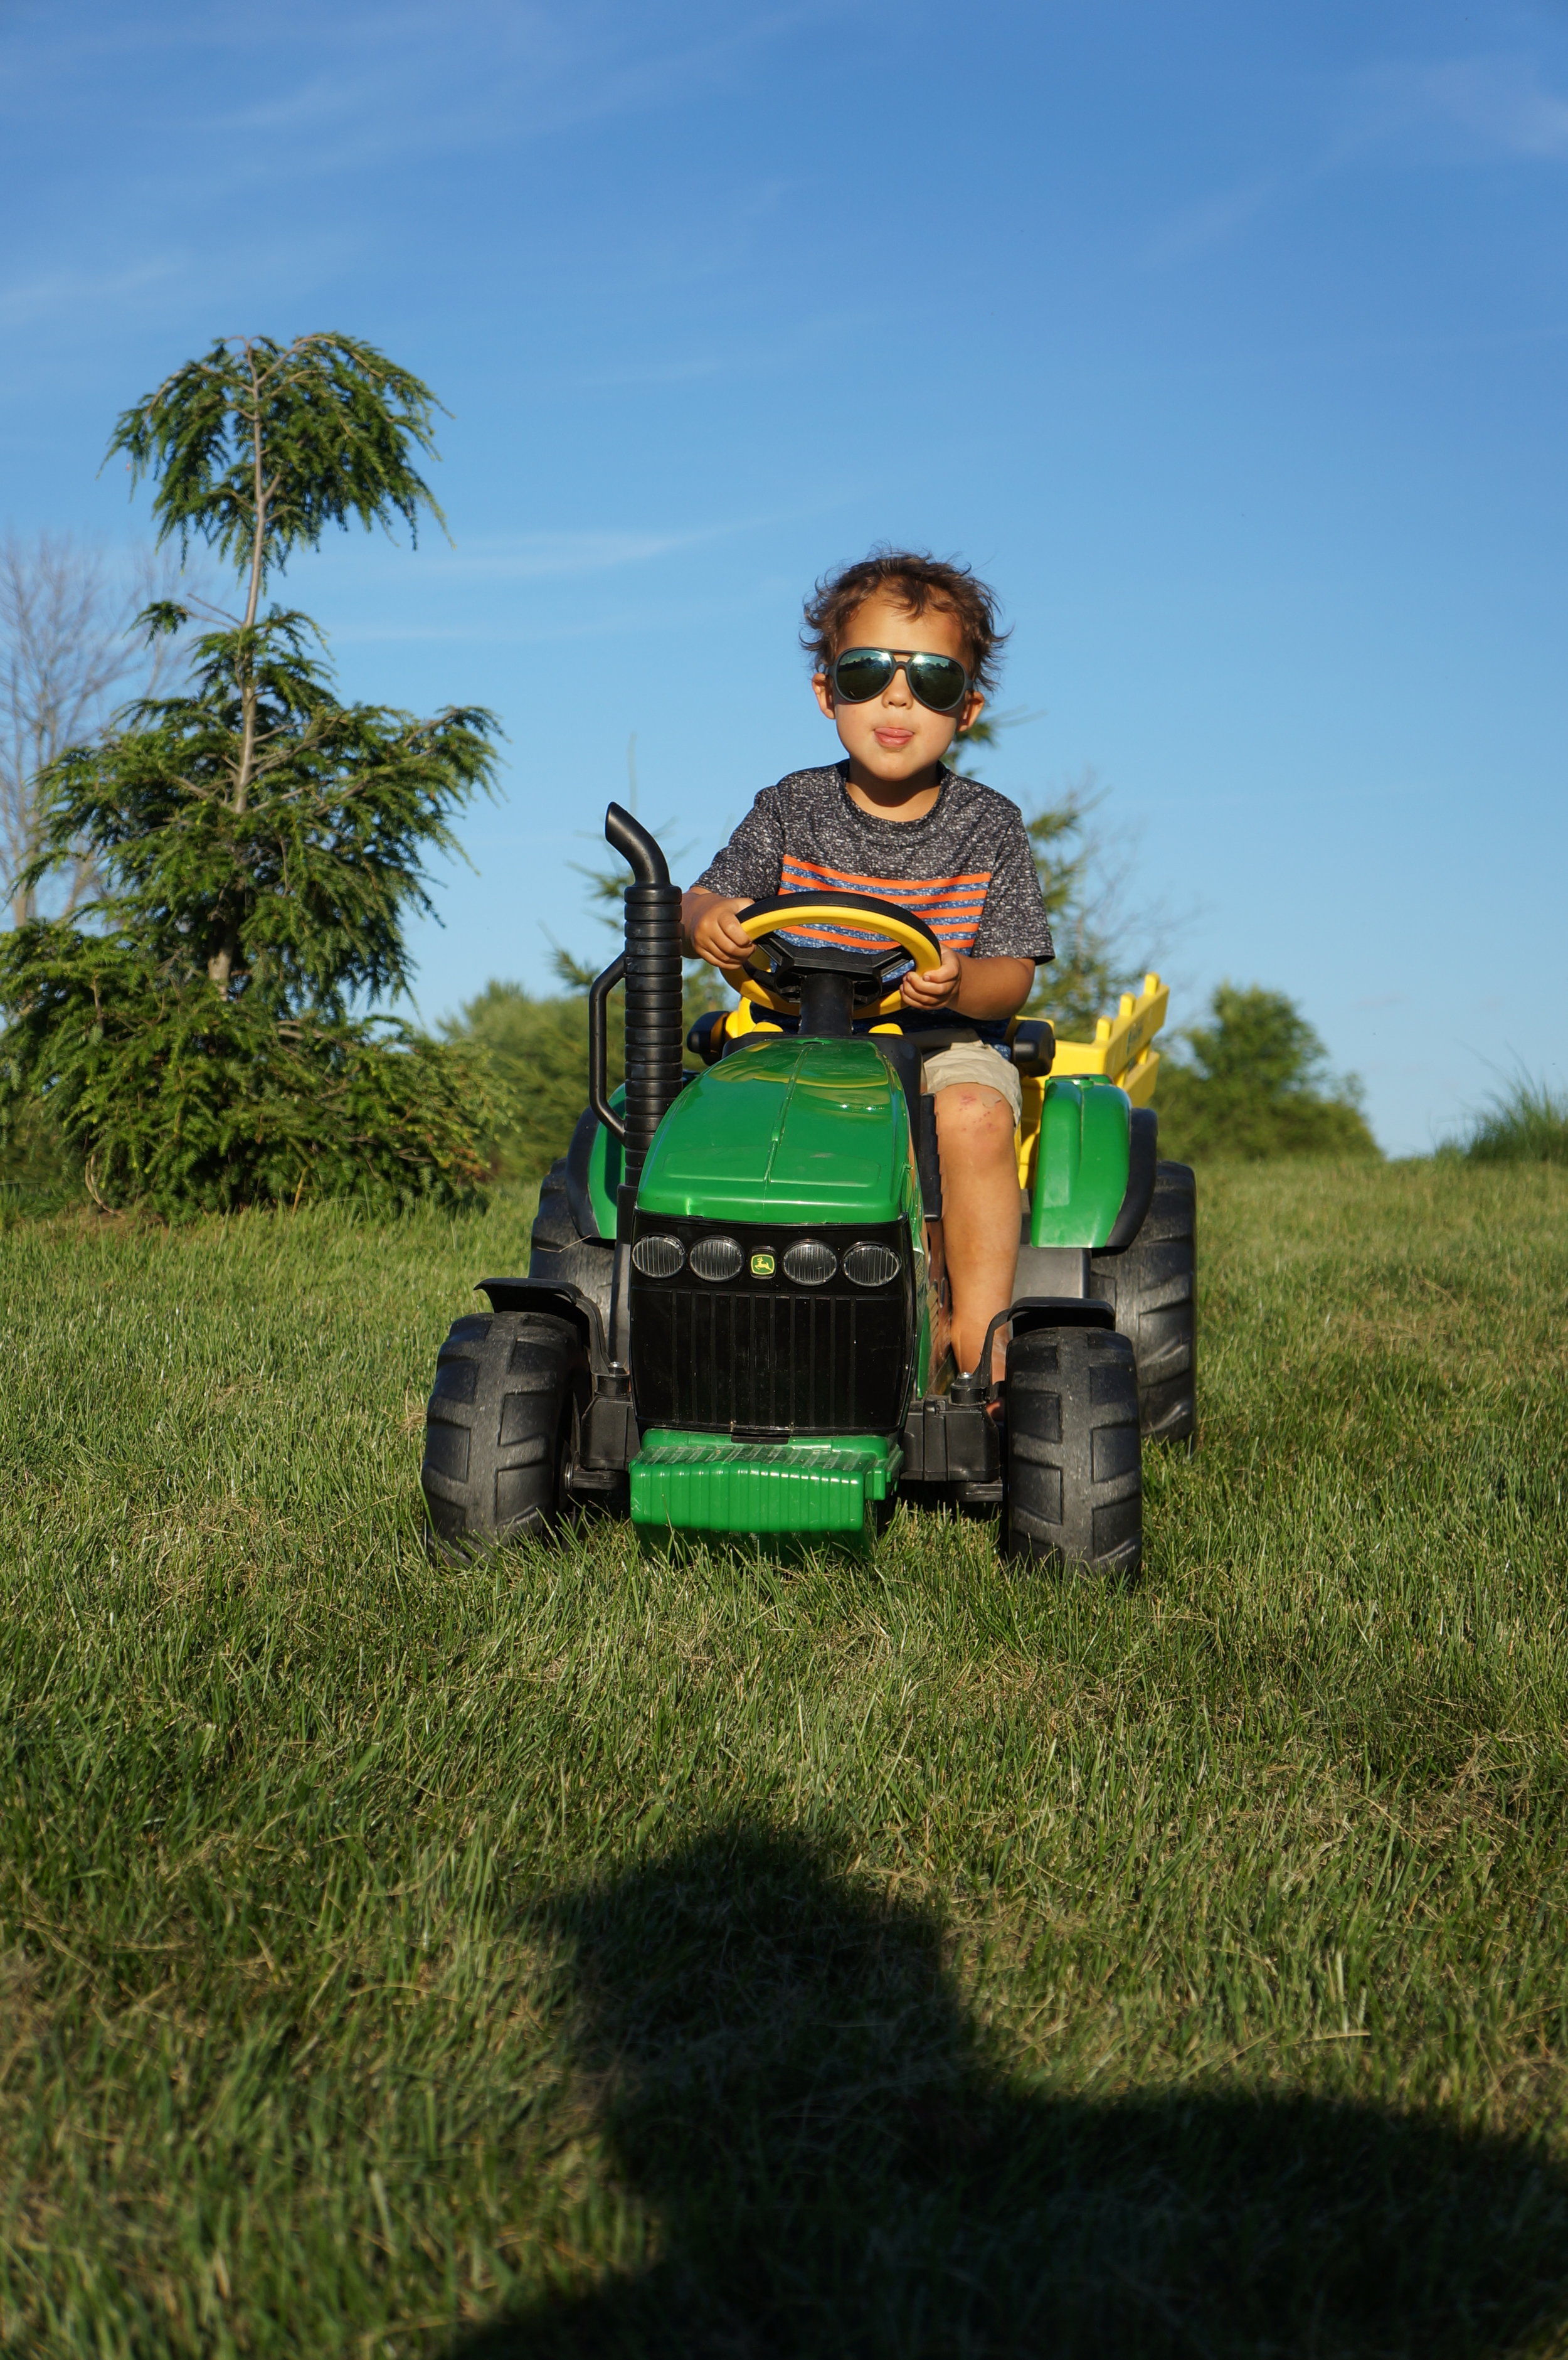 Reid might have been obsessed with this tractor. He guarded it with his life while here.